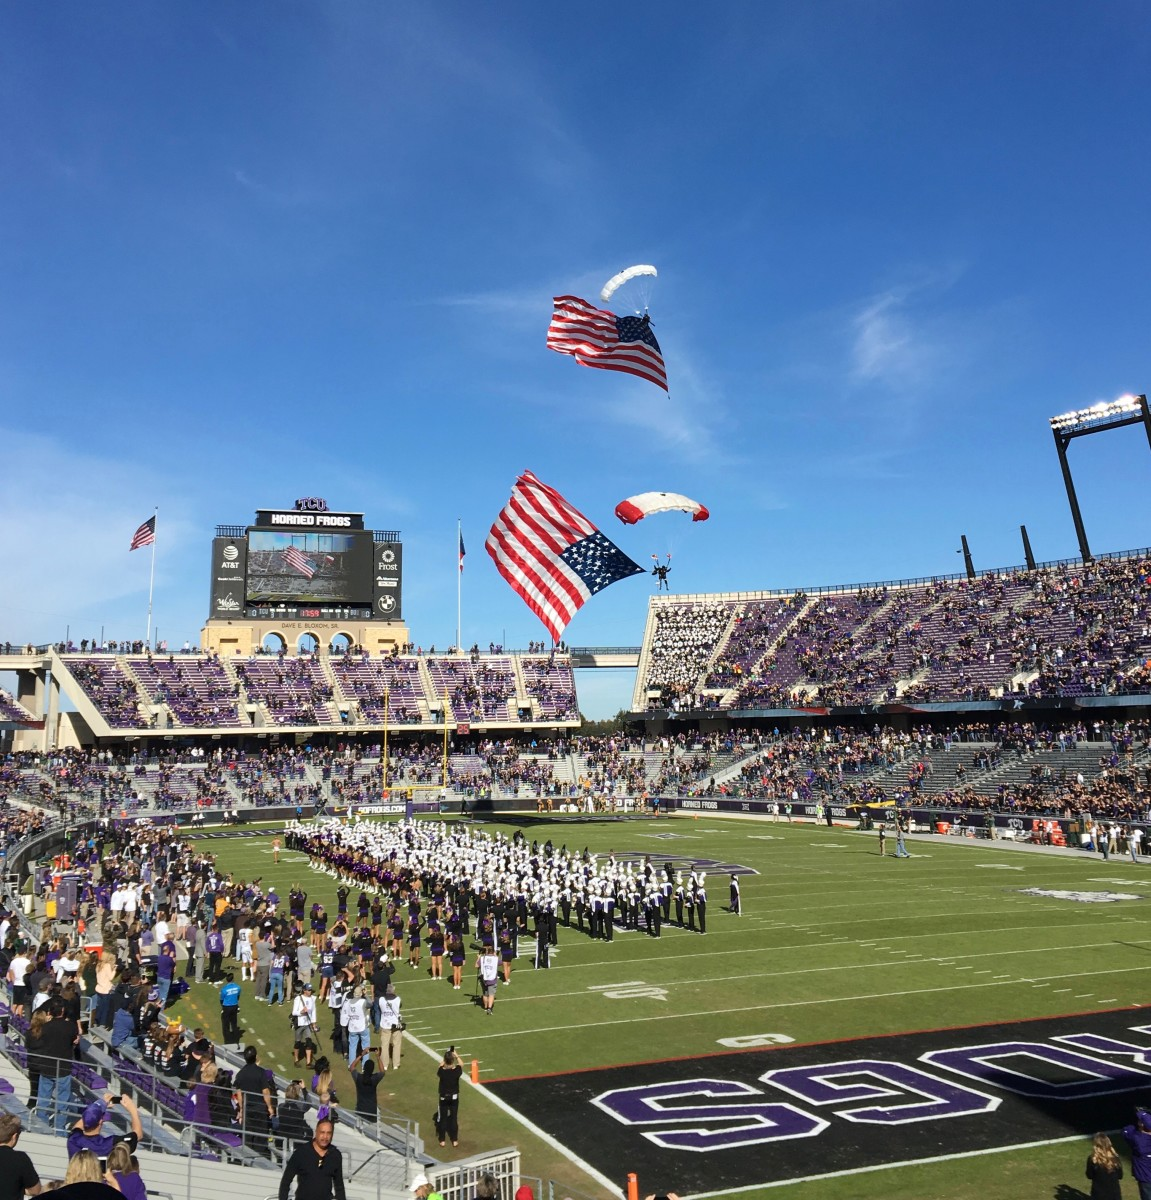 TCU Horned Frog Football